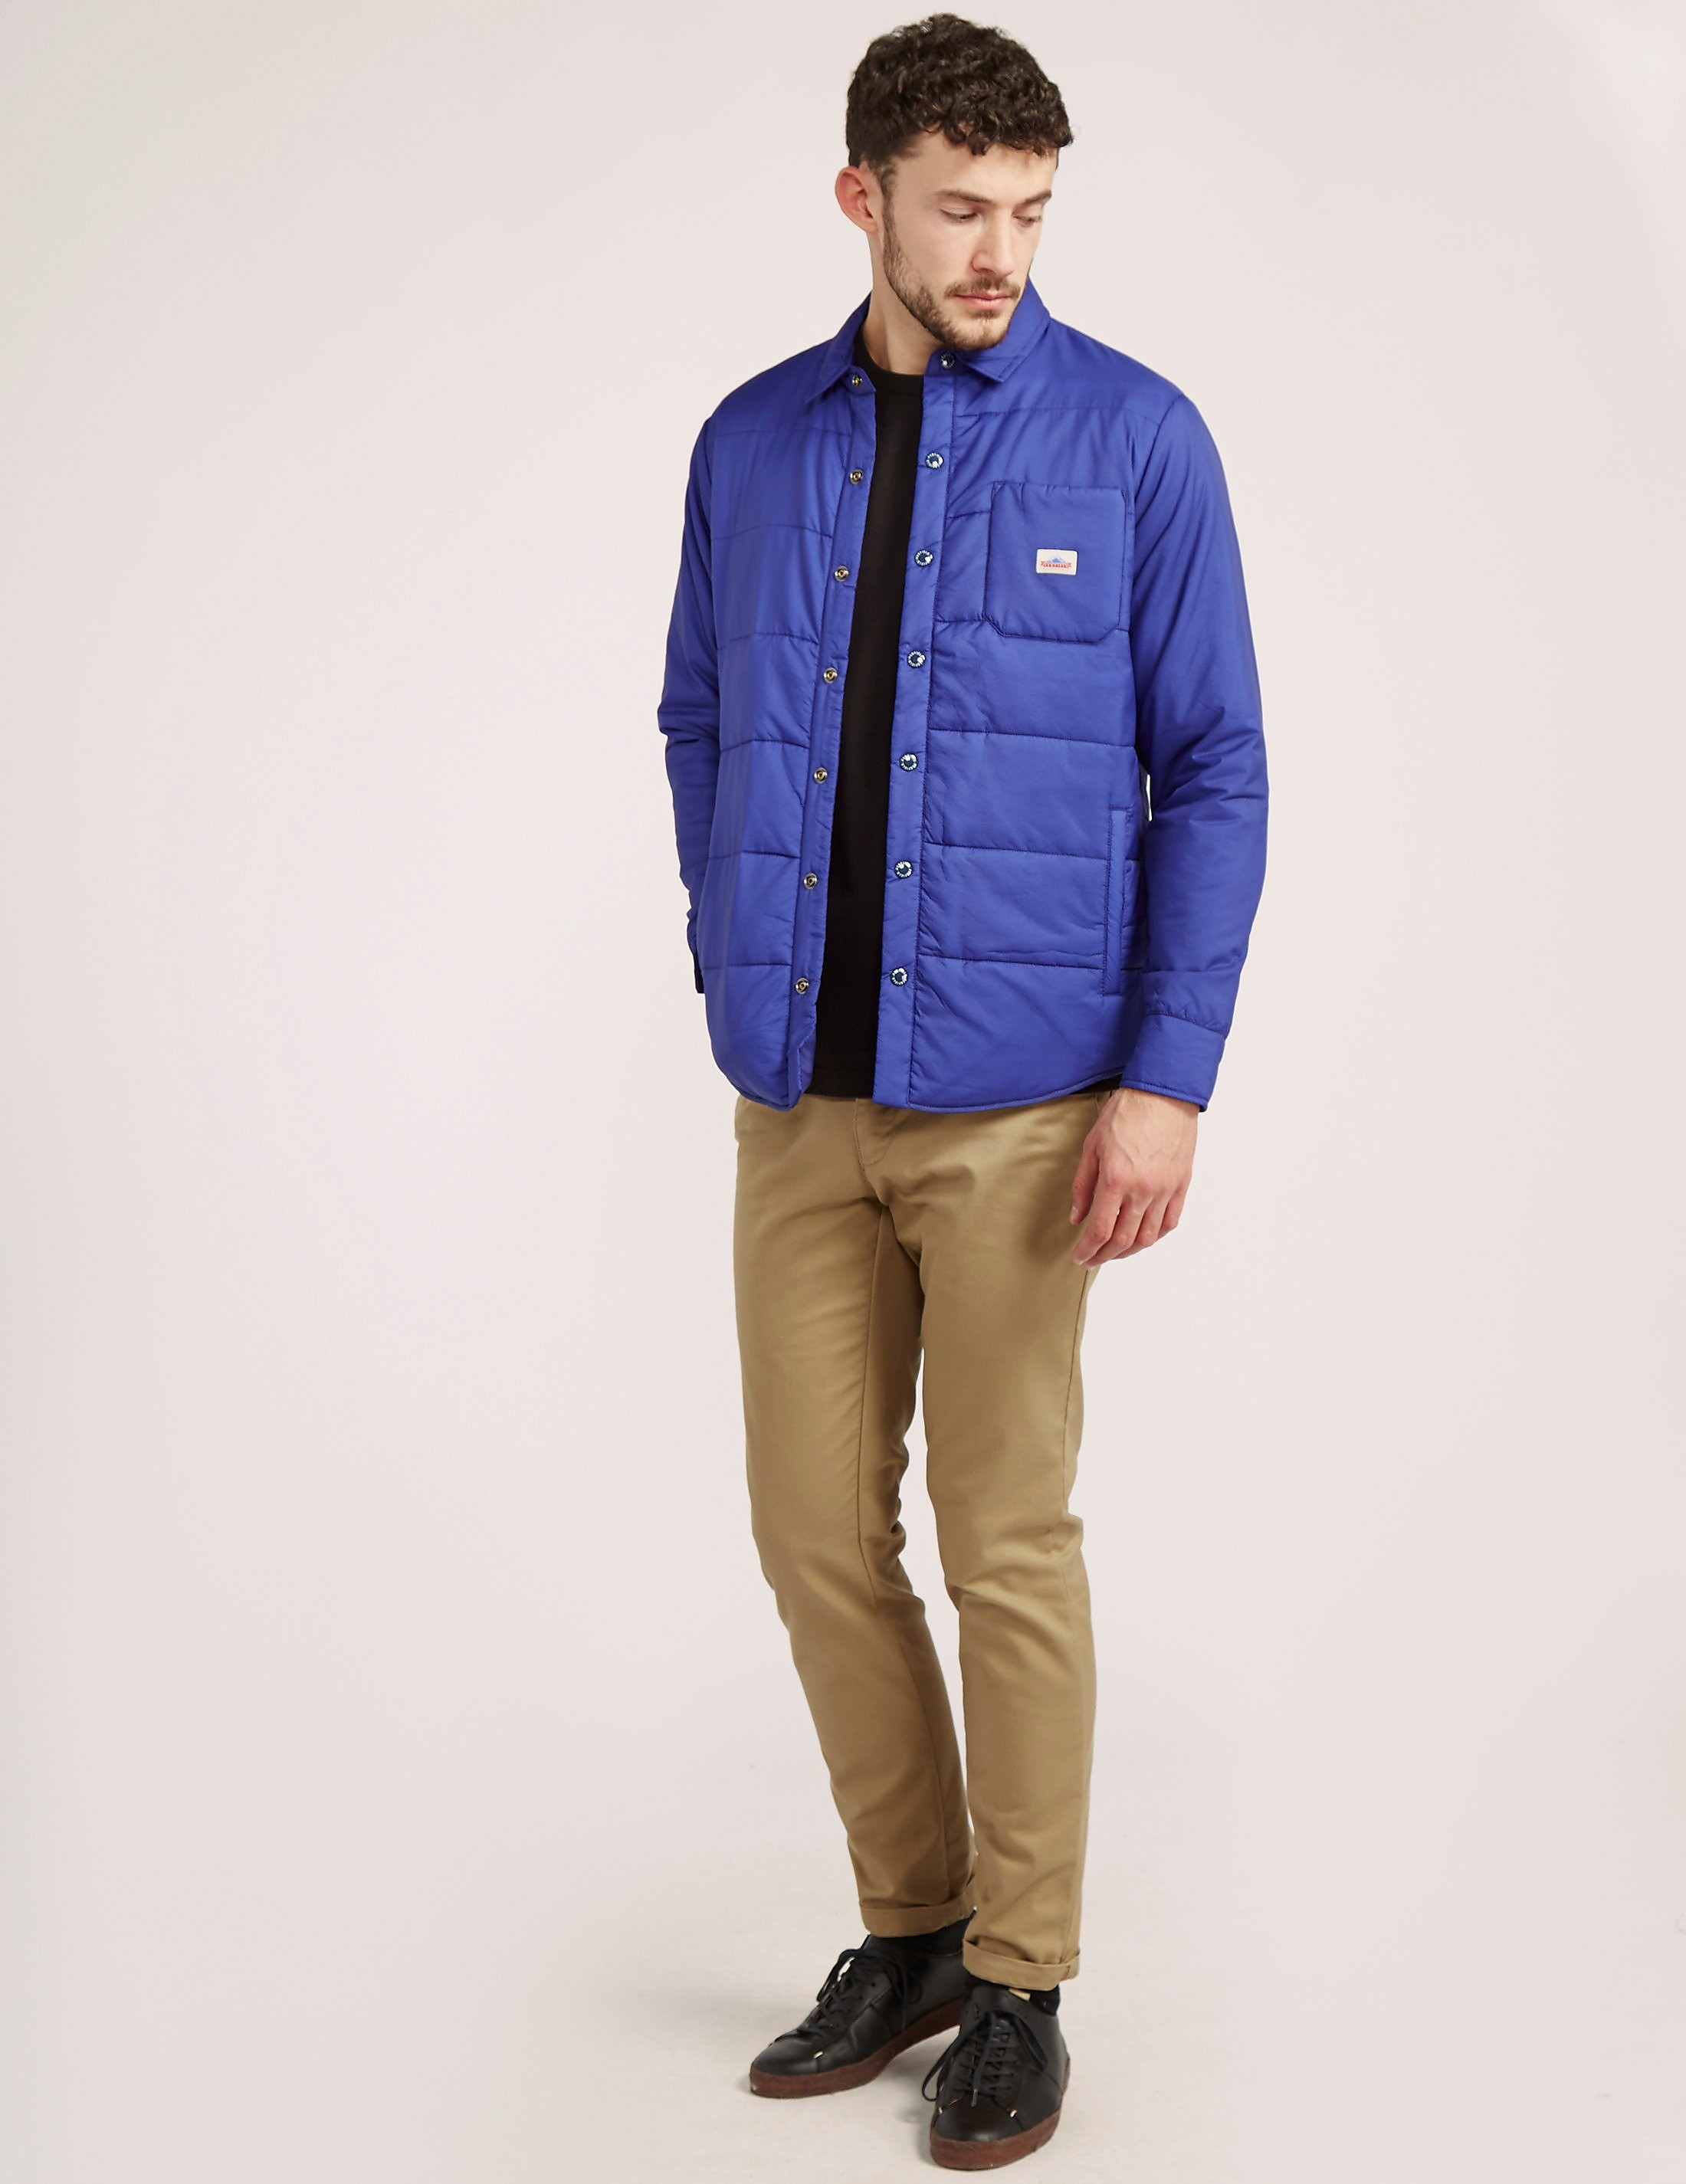 Penfield Albright Jacket